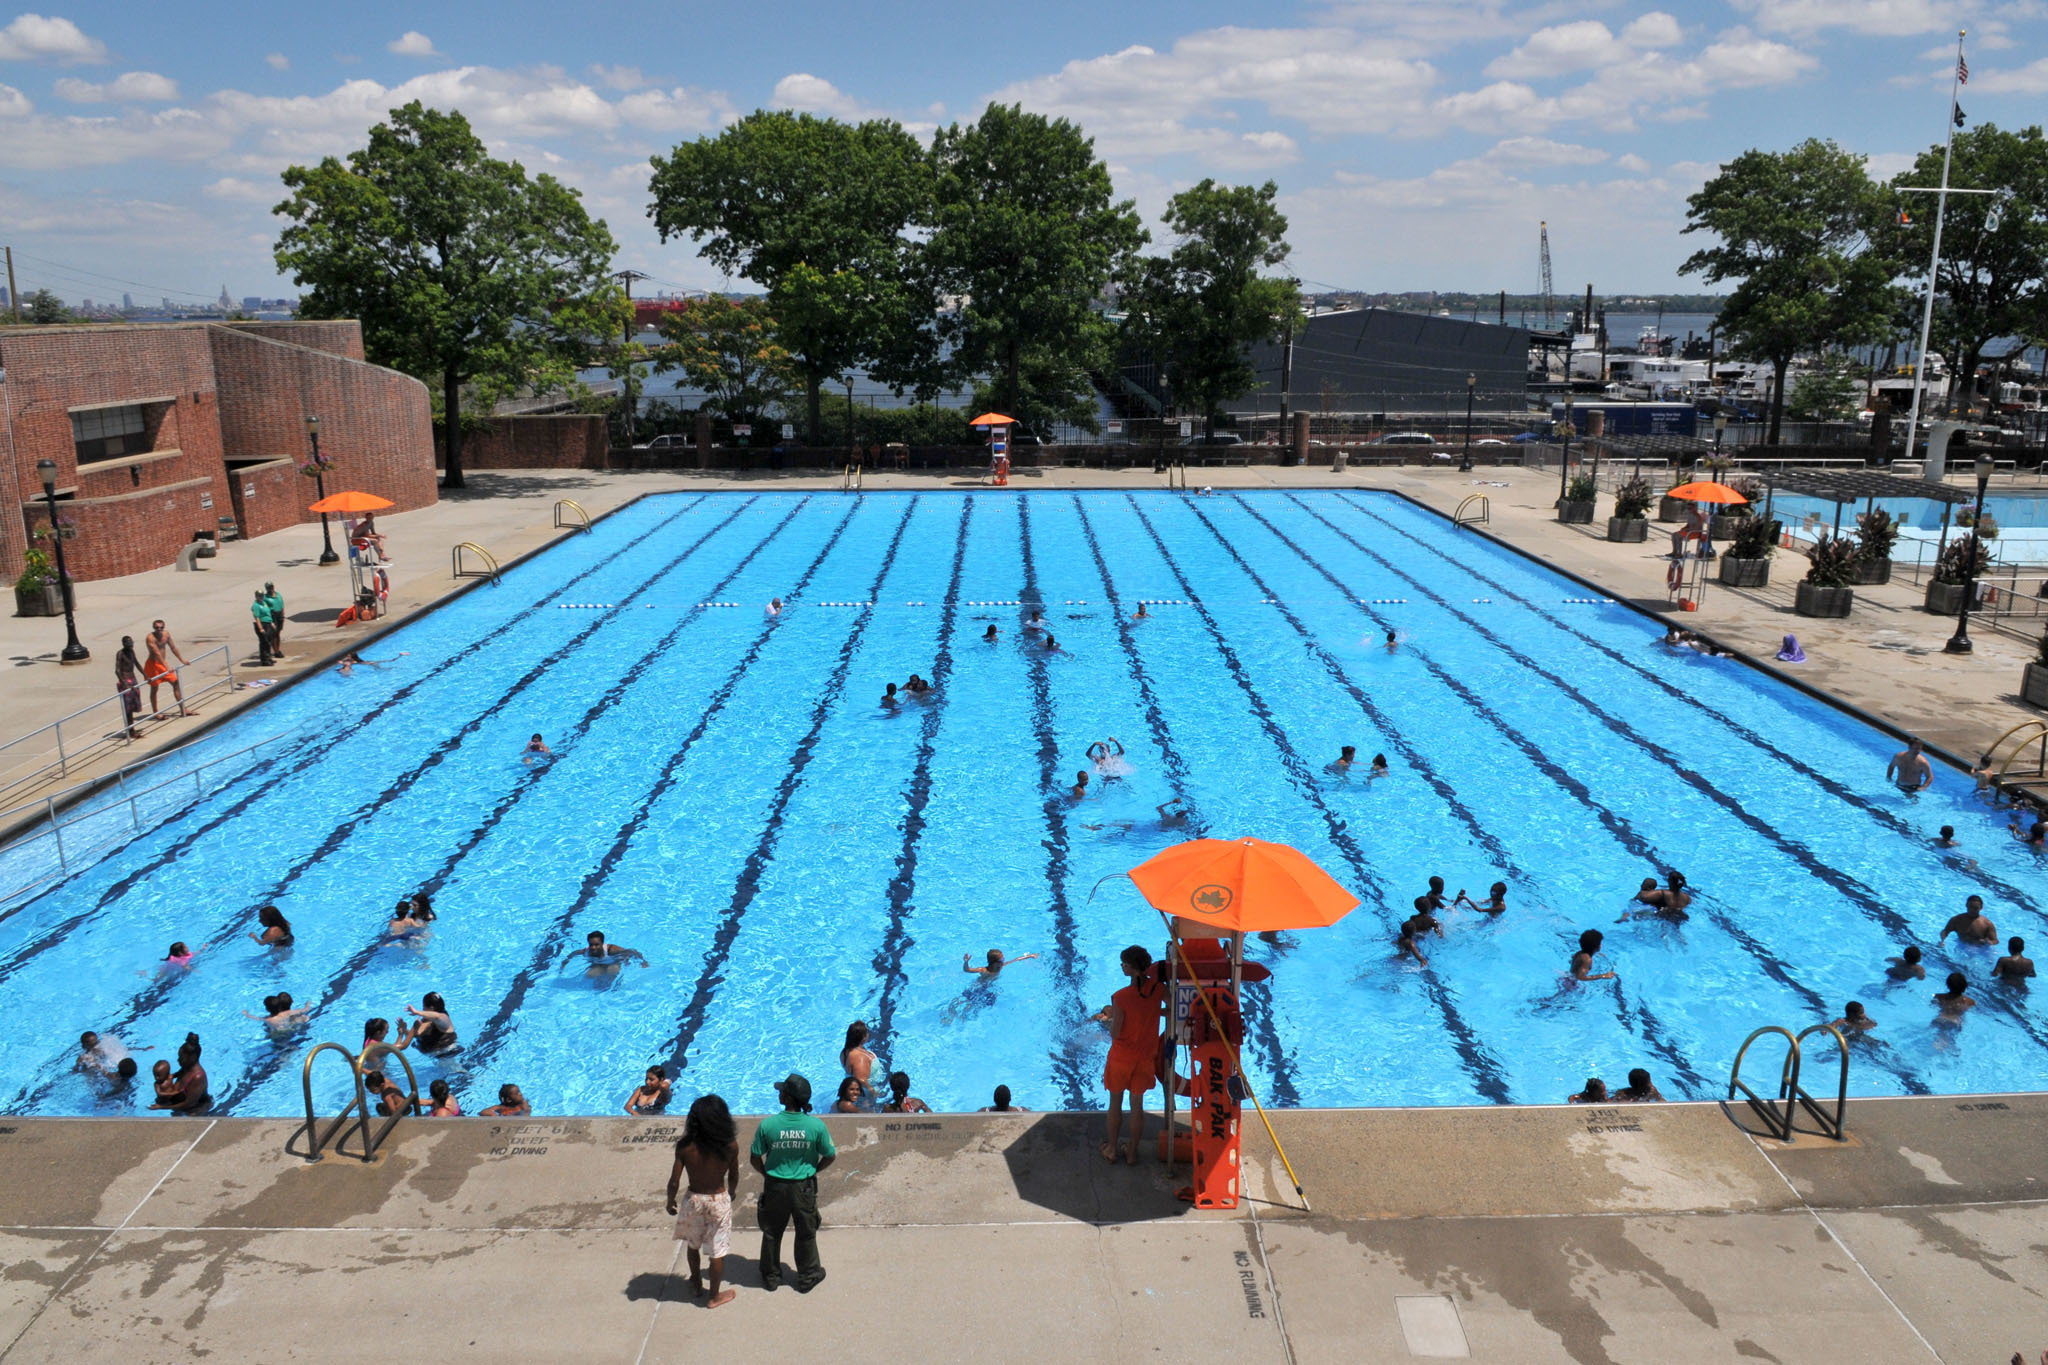 12 of the best public pools nyc has for swimming in summer for Public fishing near me